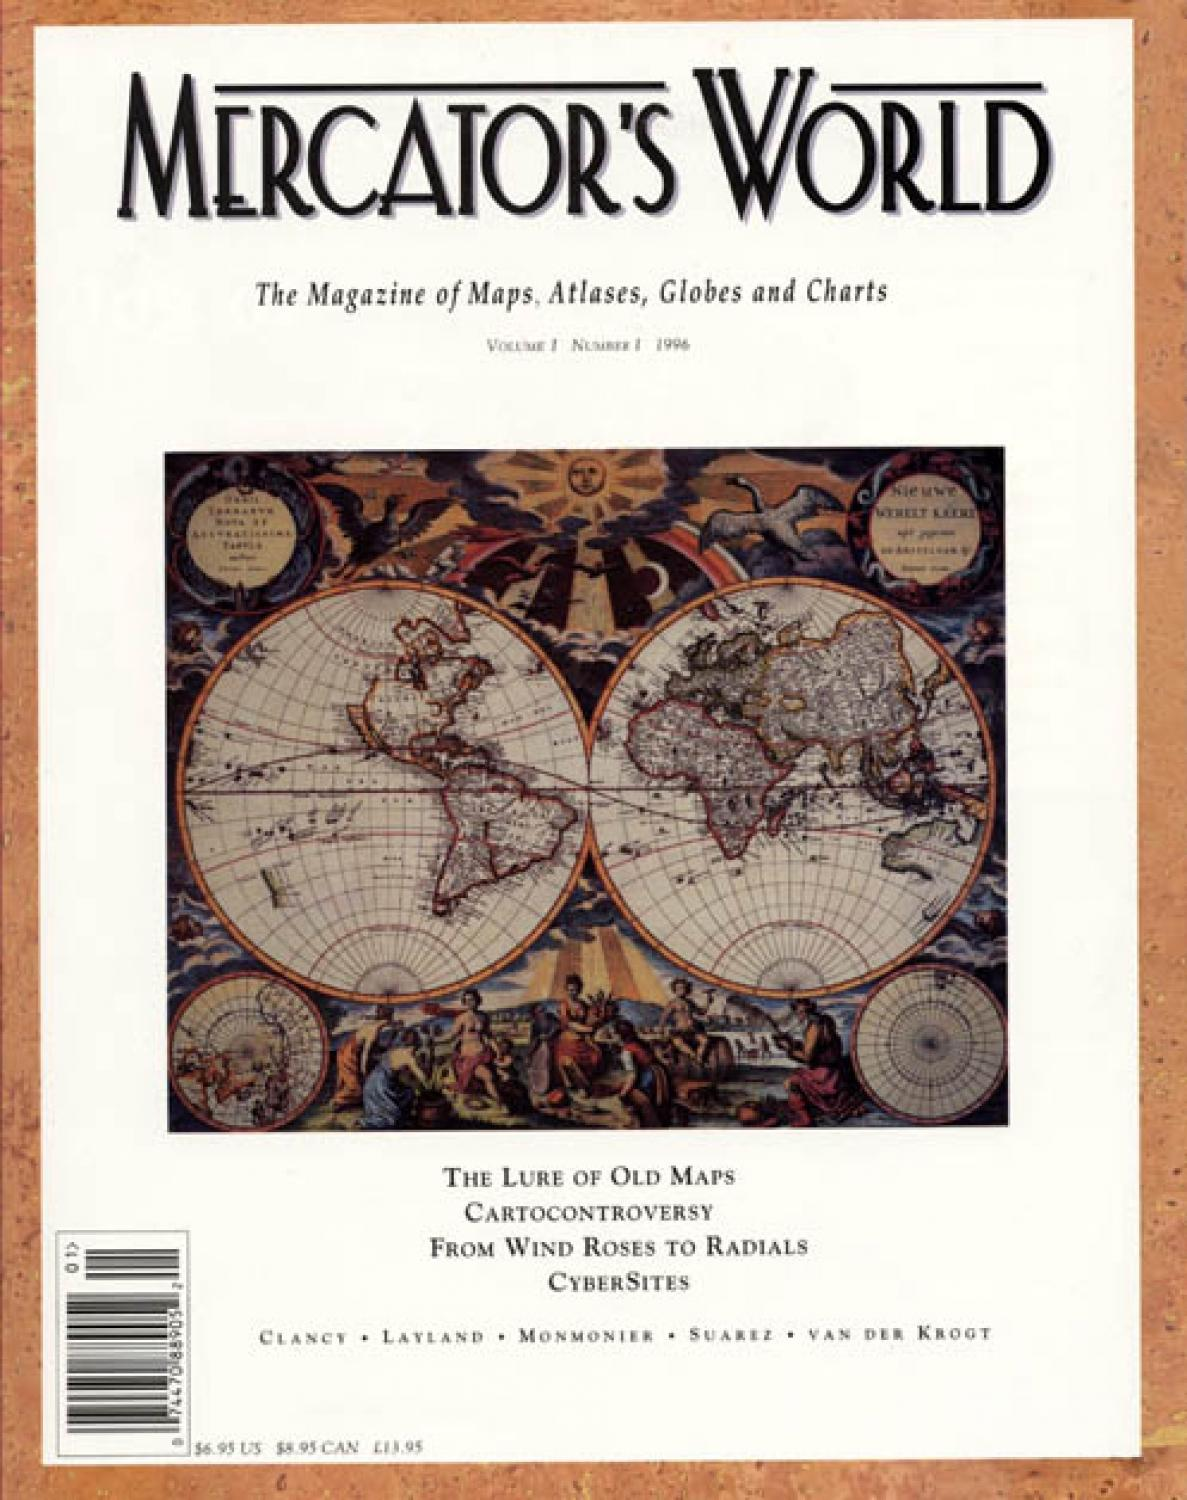 SOLD Mercators World magazine Vol 1, No 1